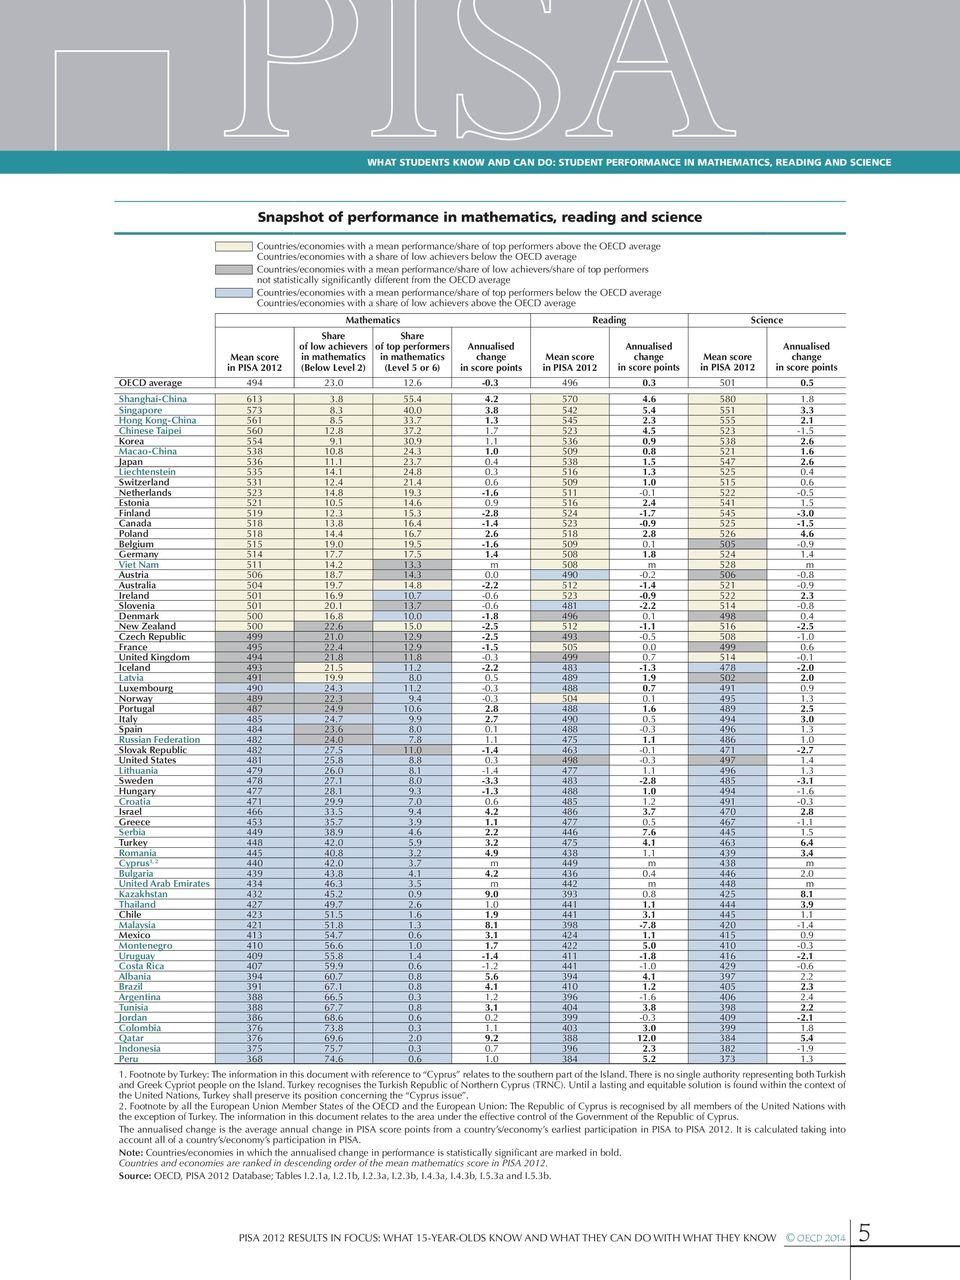 performers not statistically significantly different from the OECD average Countries/economies with a mean performance/share of top performers below the OECD average Countries/economies with a share